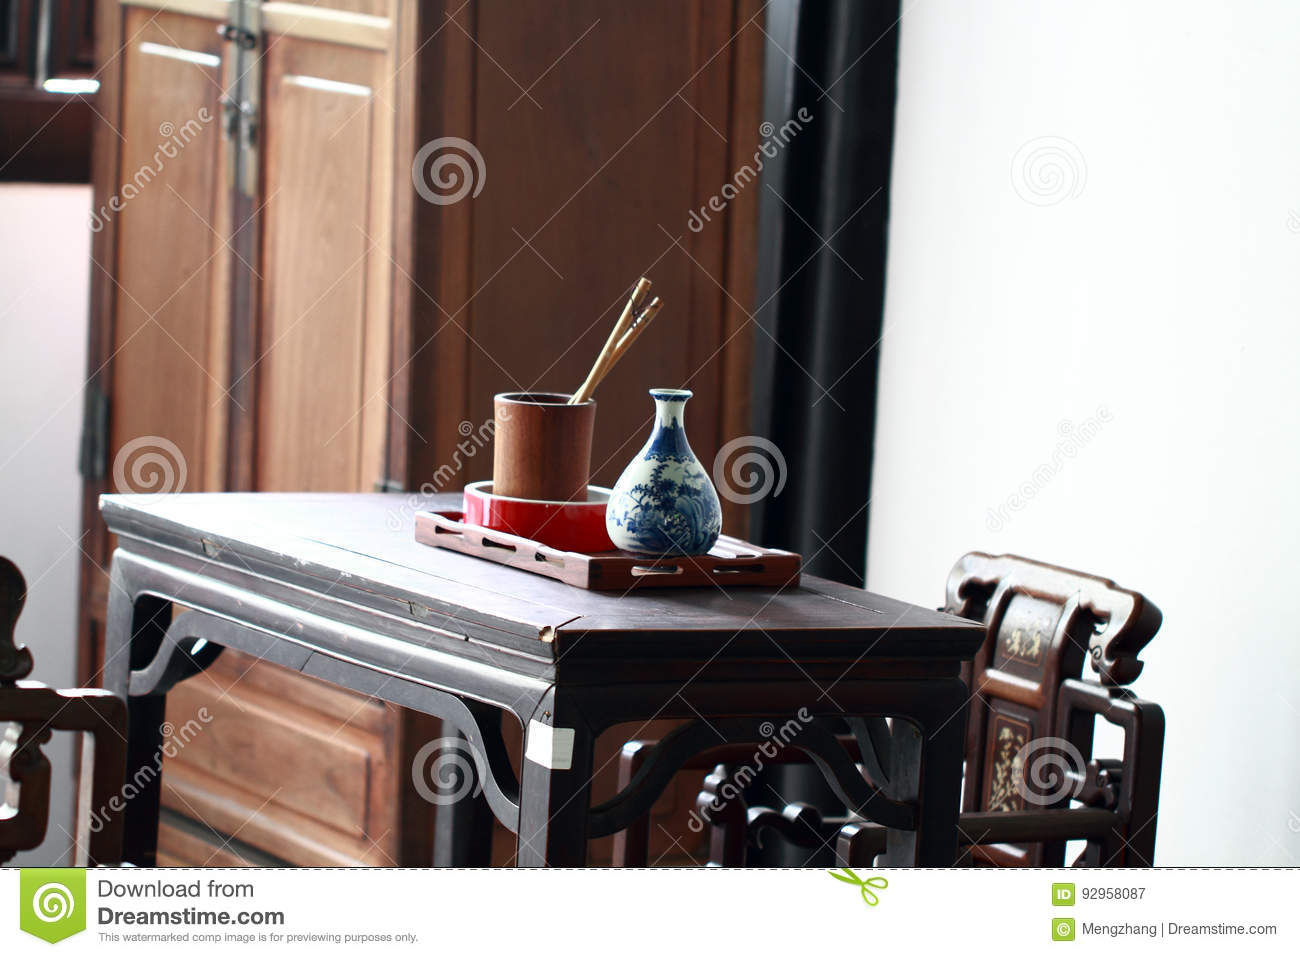 asian office furniture. Wooden Antique Office Furniture With Asian Chinese Traditional Design And  Pattern In Workplace. Office Mahogany Wood Desk Chairs East Asia China Asian